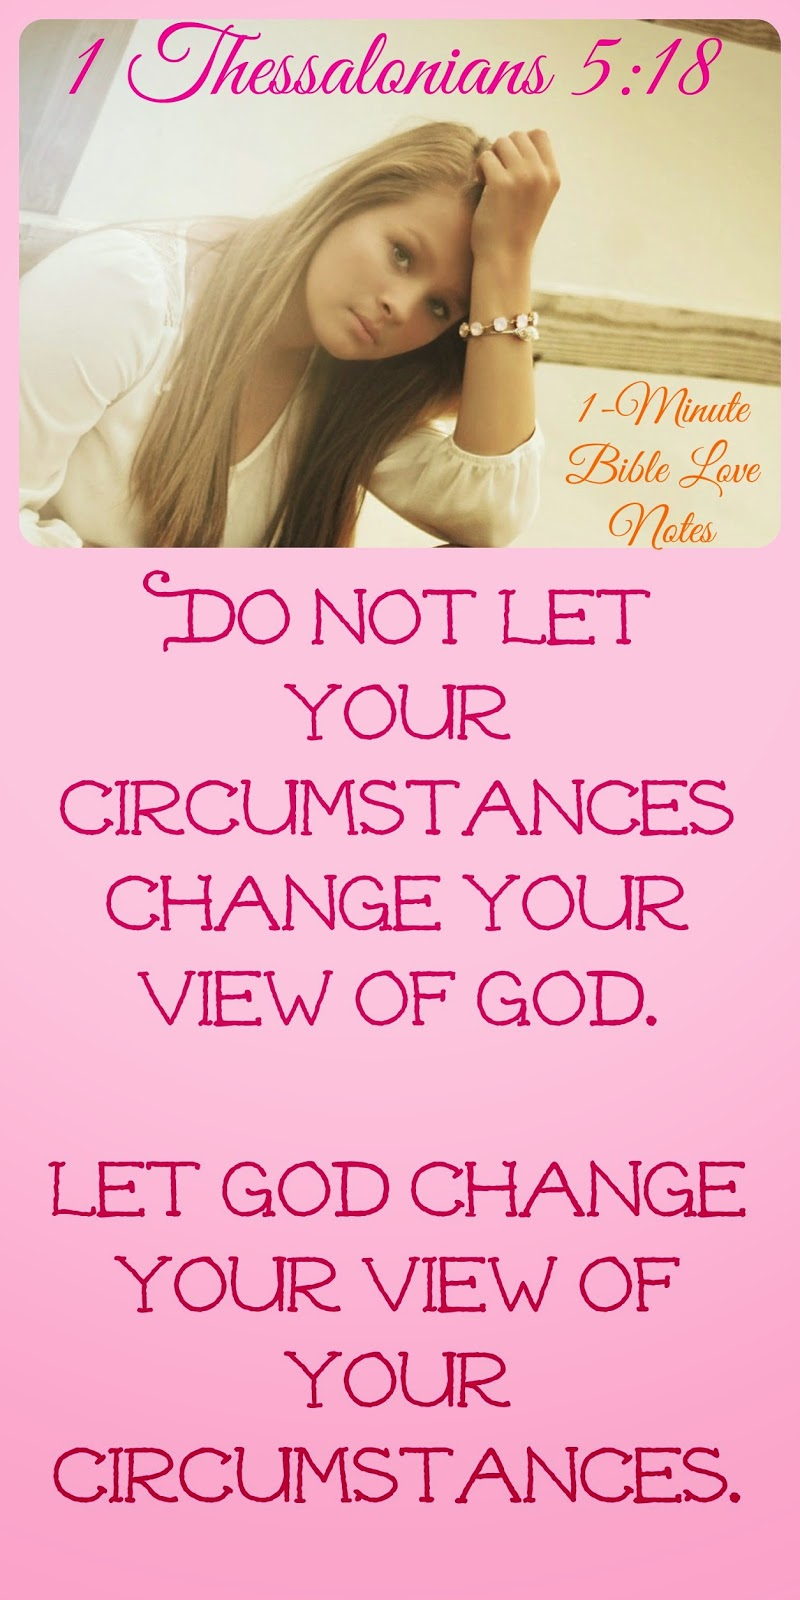 Don't let circumstances change your view of God, Let God change your view of your circumstances, 1 Thessalonians 5:16-18, Rejoice, pray, thank God